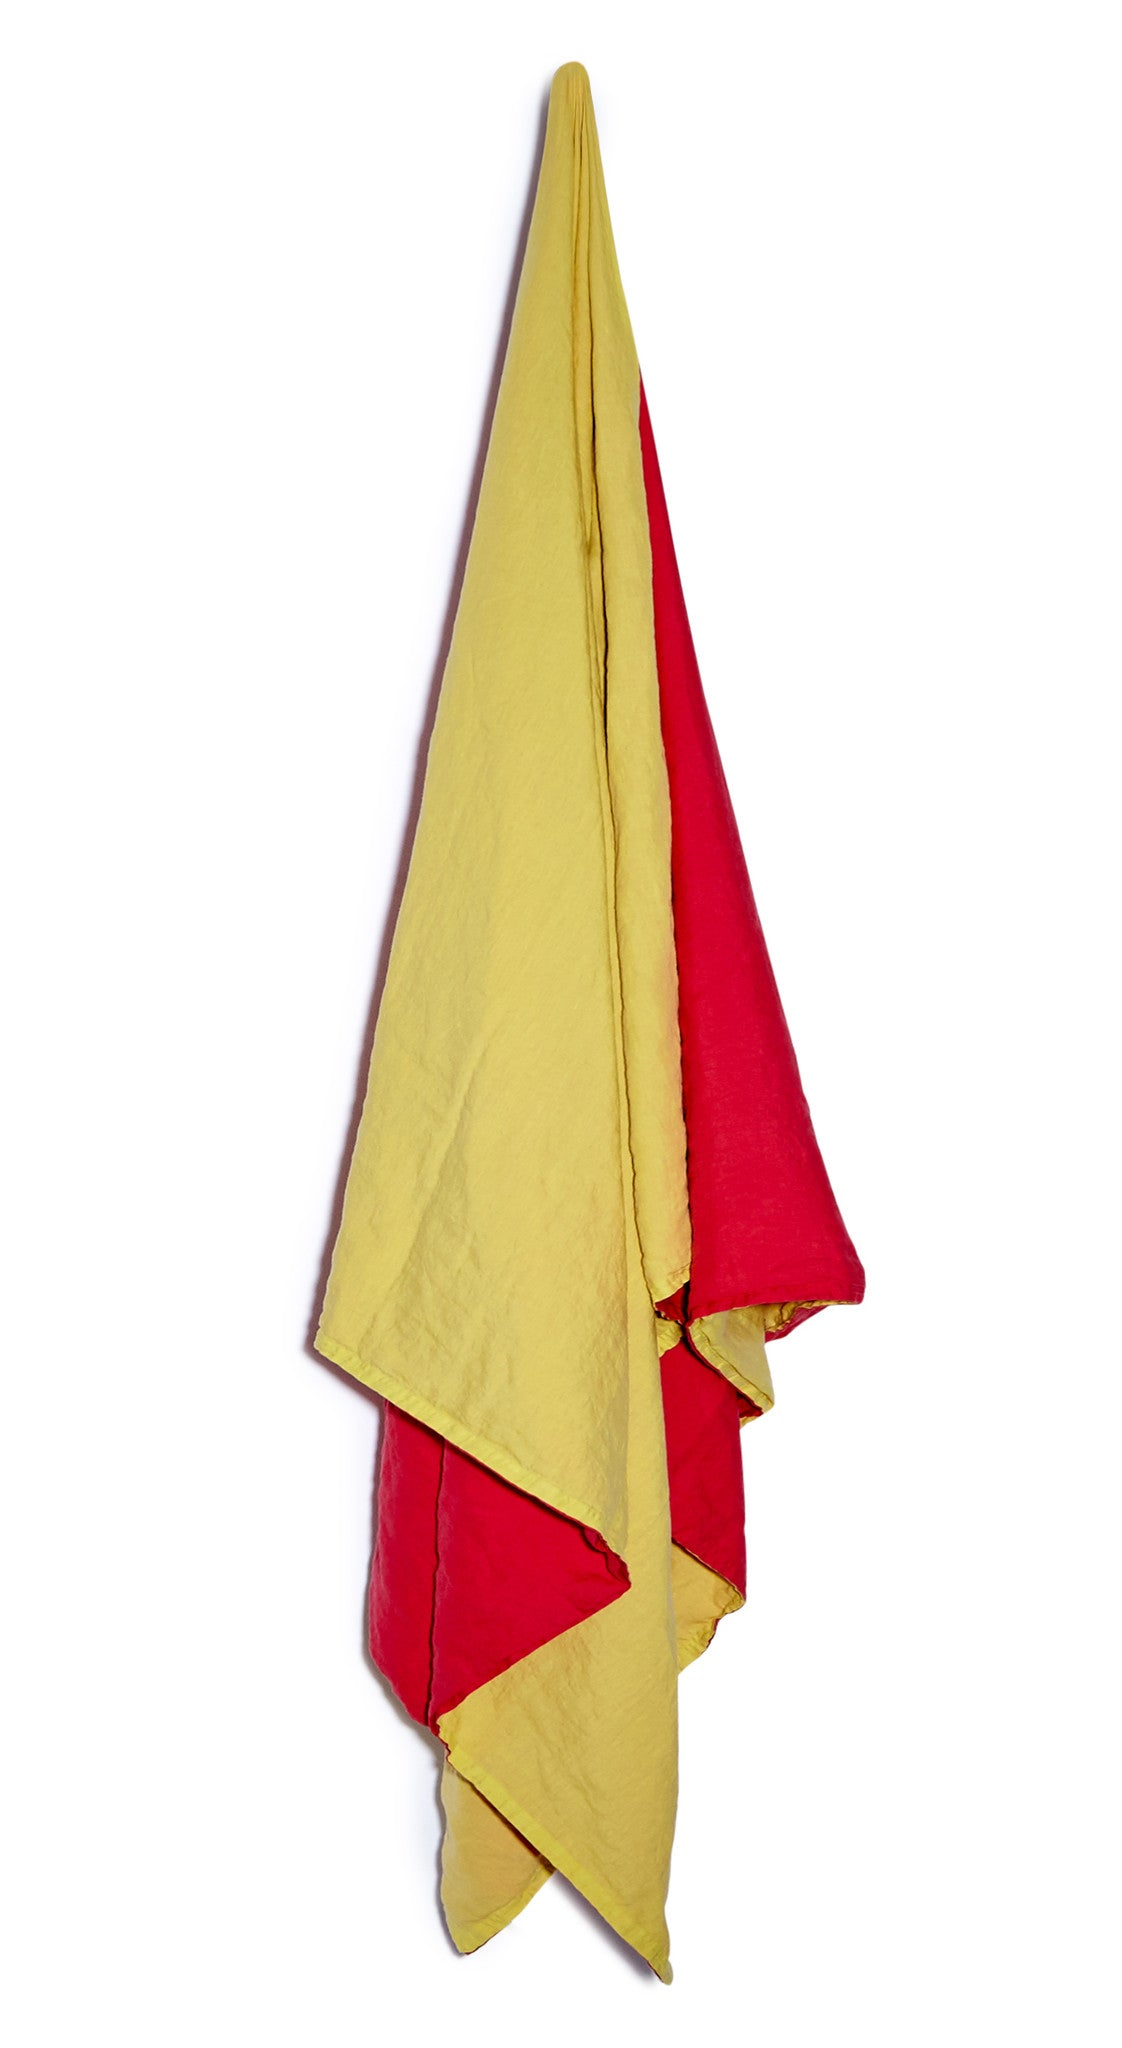 Reversible Linen Tablecloth in Pillar Box Red and Canary Yellow